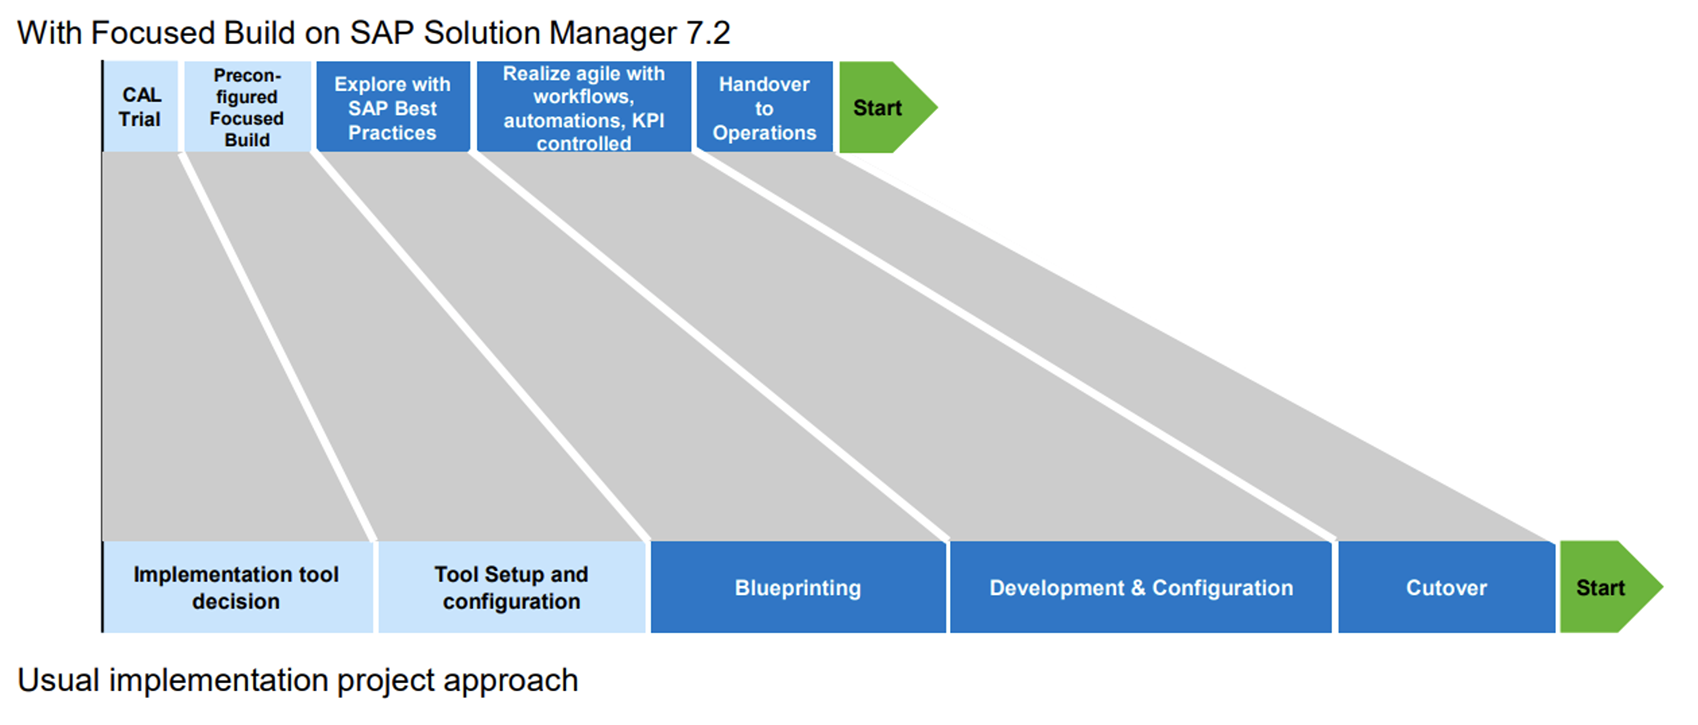 What is SAP Focused Build and how to get started?